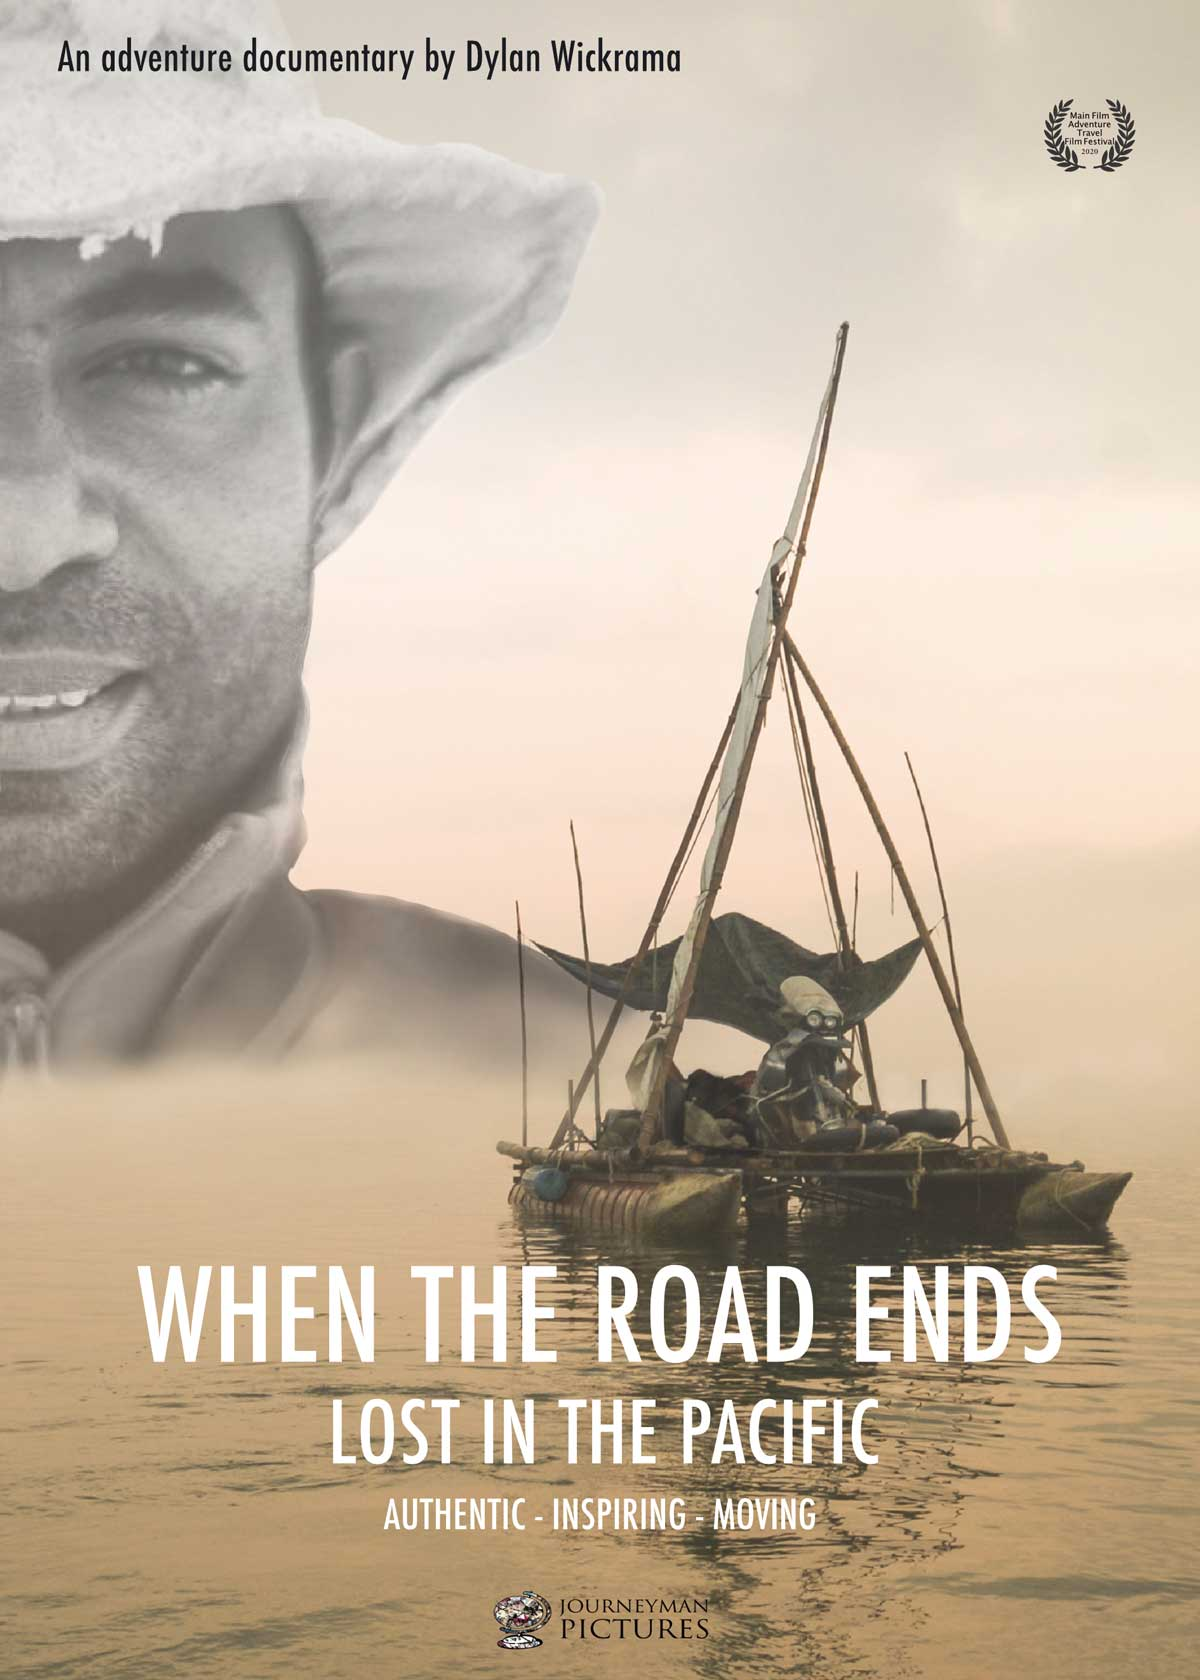 When the cover of Road Ends 2 magazine